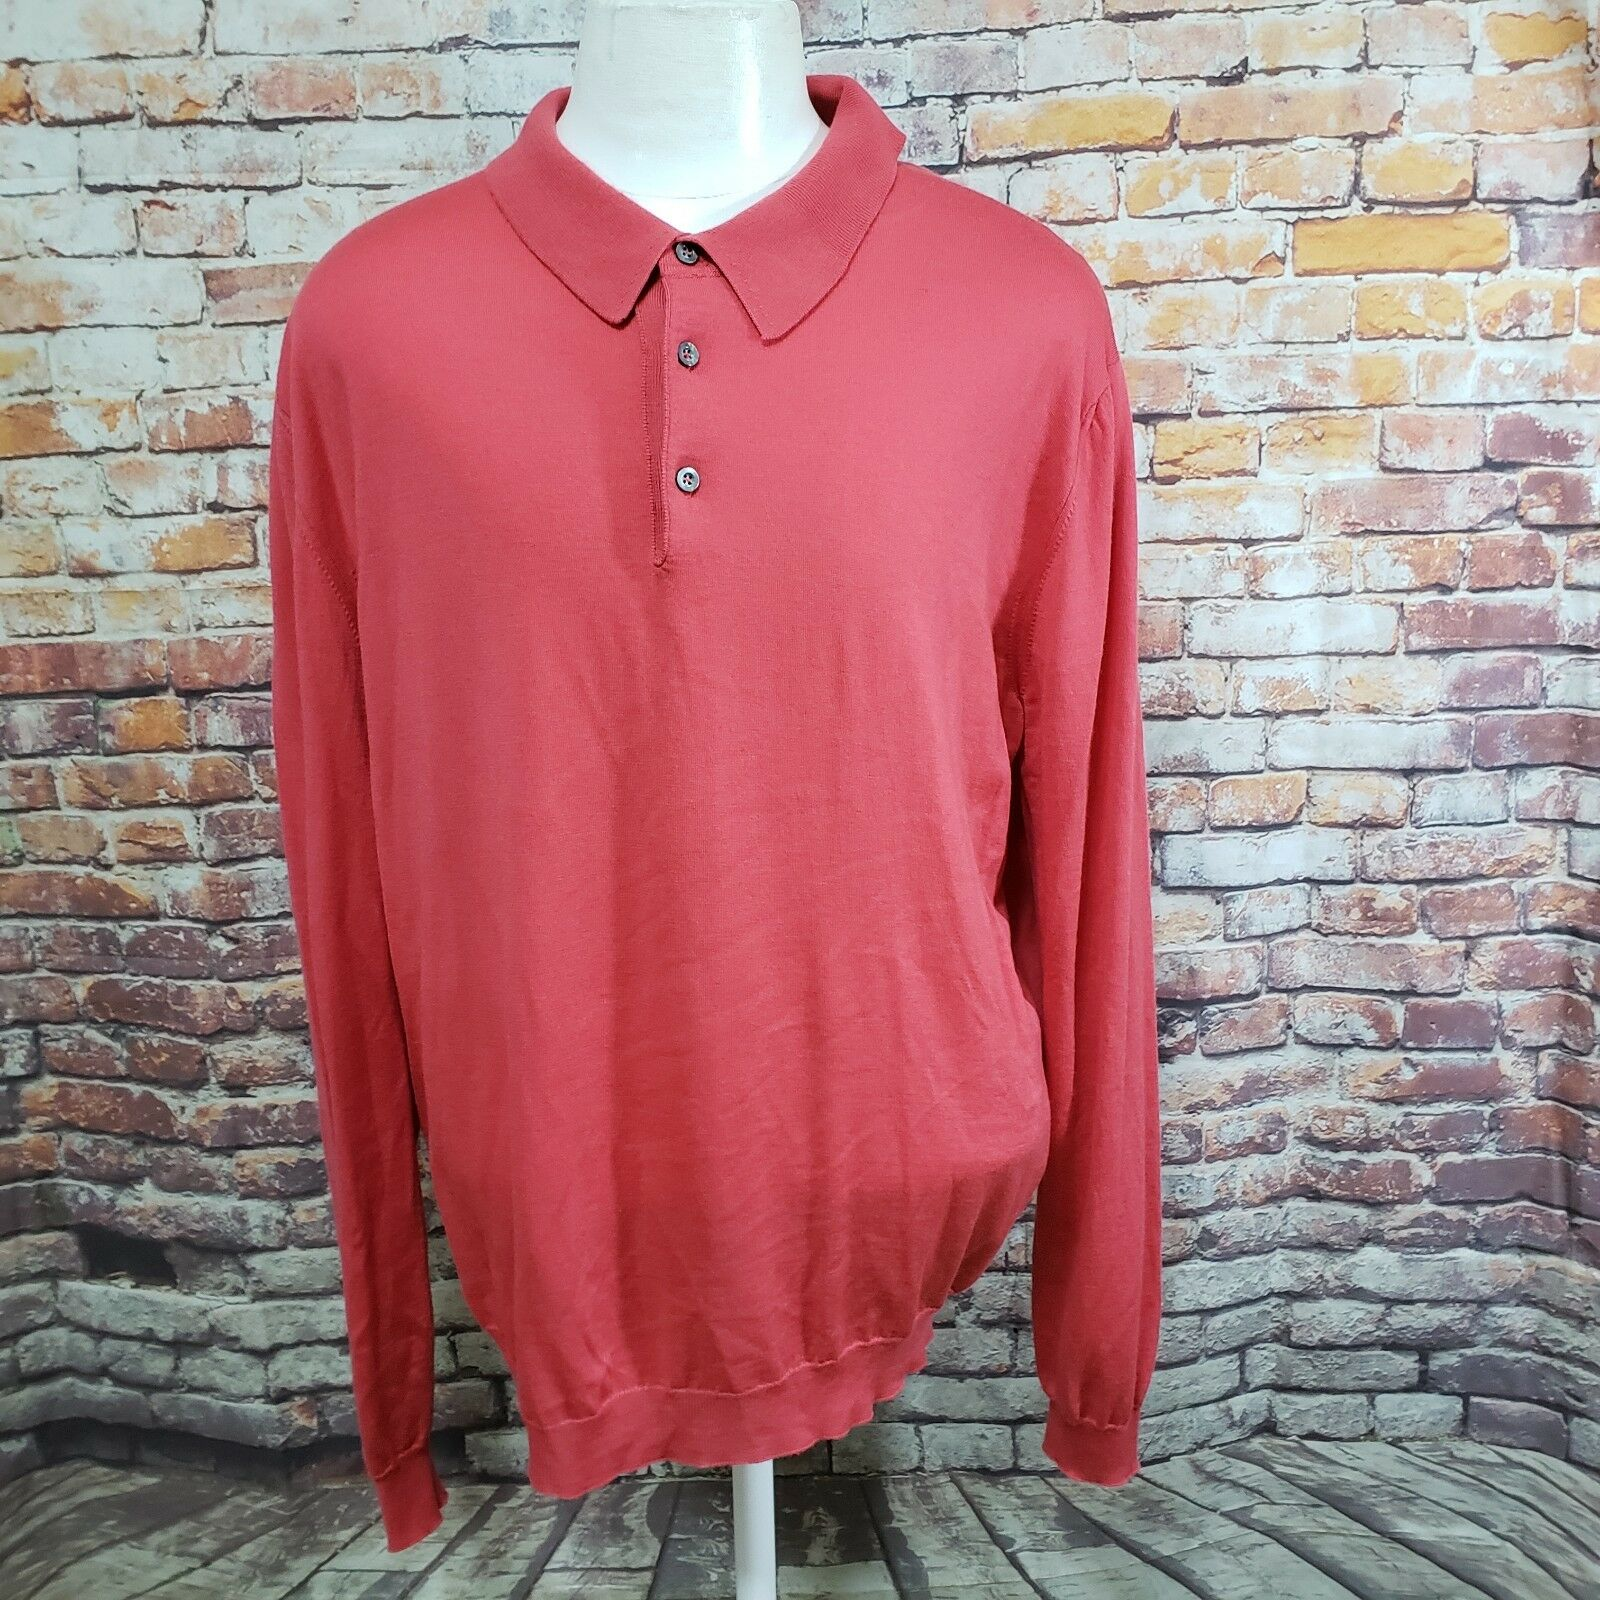 AVON CELLI Herren 100% WOOL POLO SWEATER SIZE XXL (58 EU) A26-04